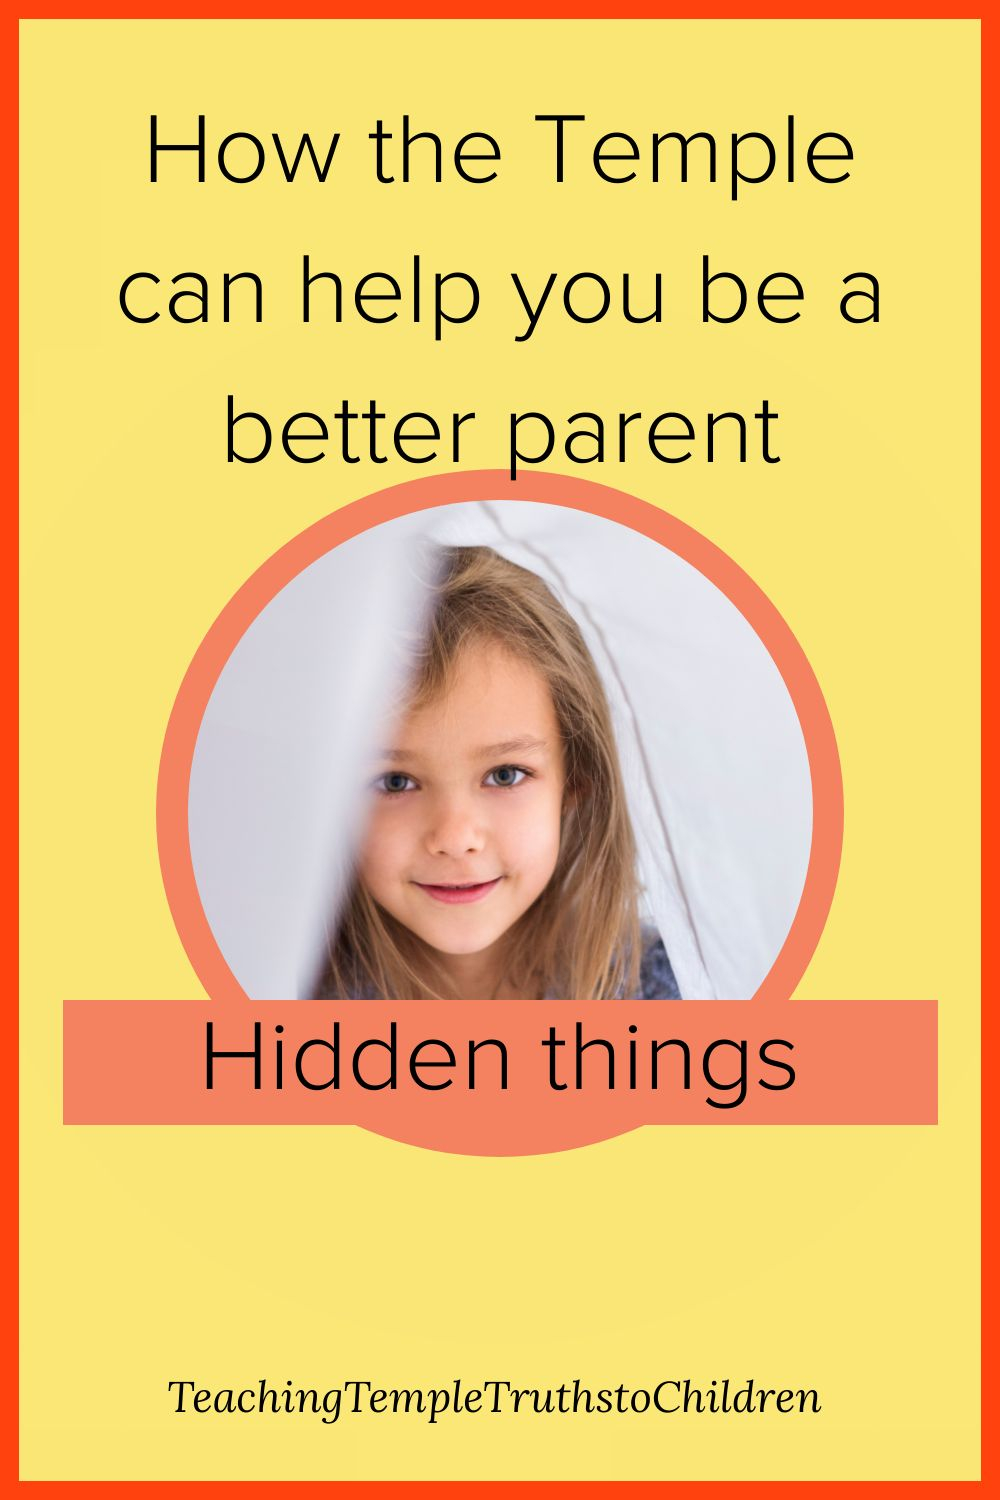 How the Temple can make you a better parent: hidden things